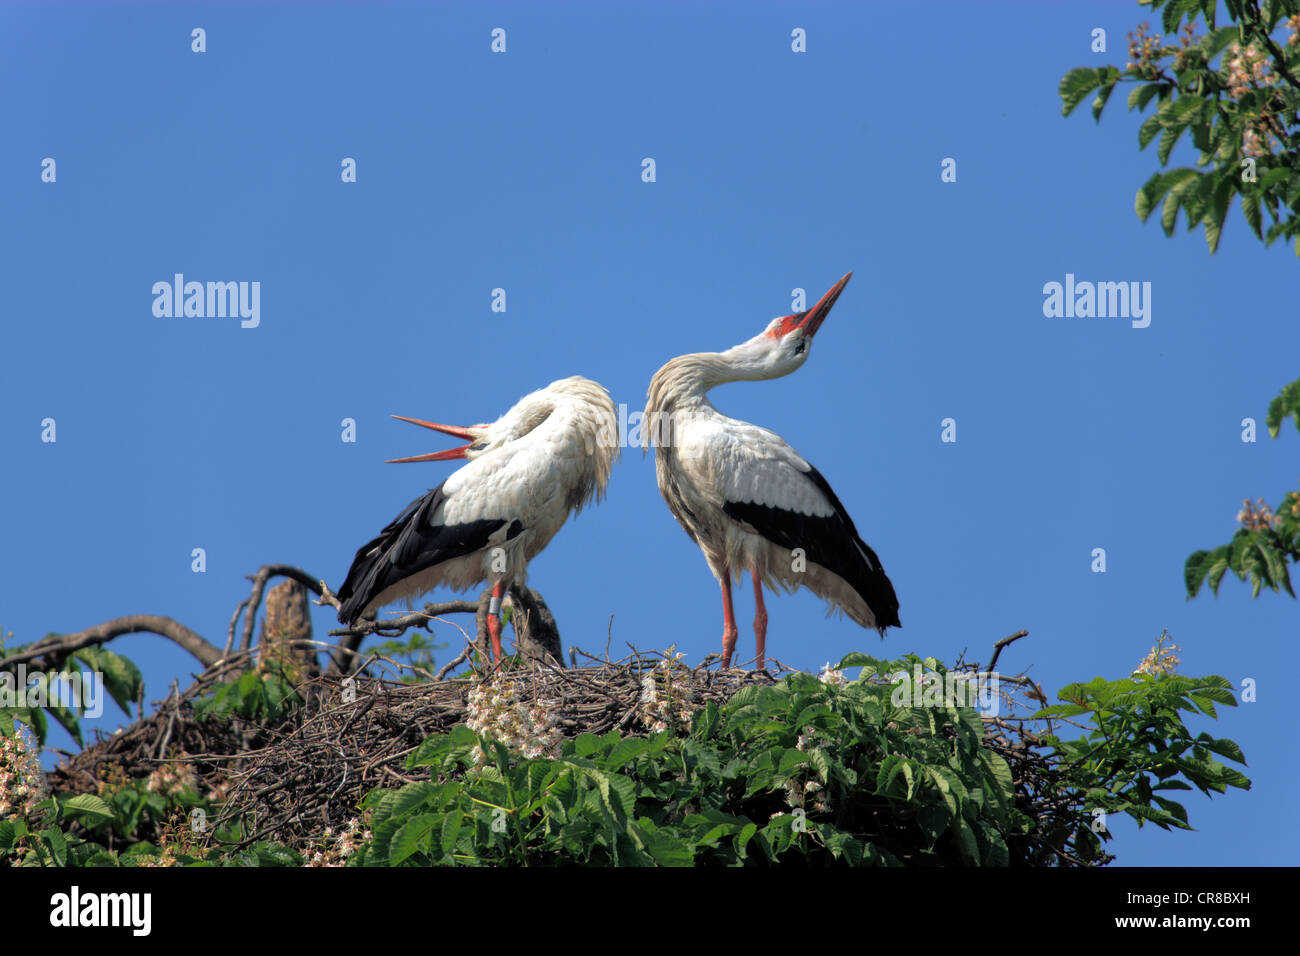 White Storks (Ciconia ciconia), pair clapping their beaks in a nest in a chestnut tree, Mannheim, Baden-Wuerttemberg - Stock Image